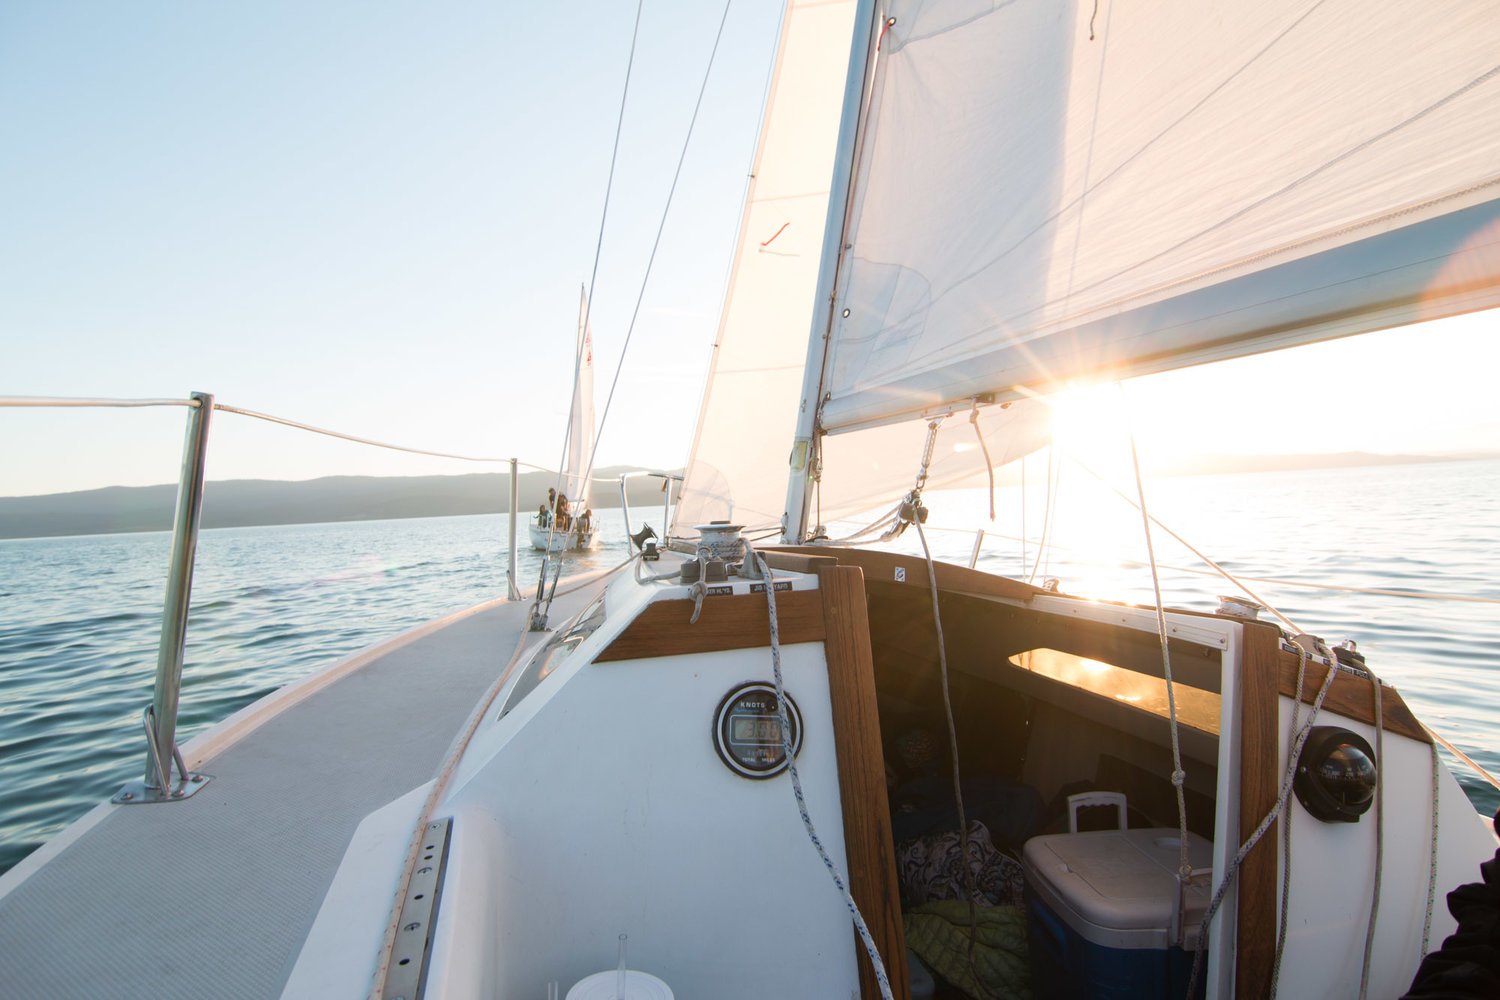 Ready for smooth sailing? - Let's make this adventure feel a whole lot more enjoyable…